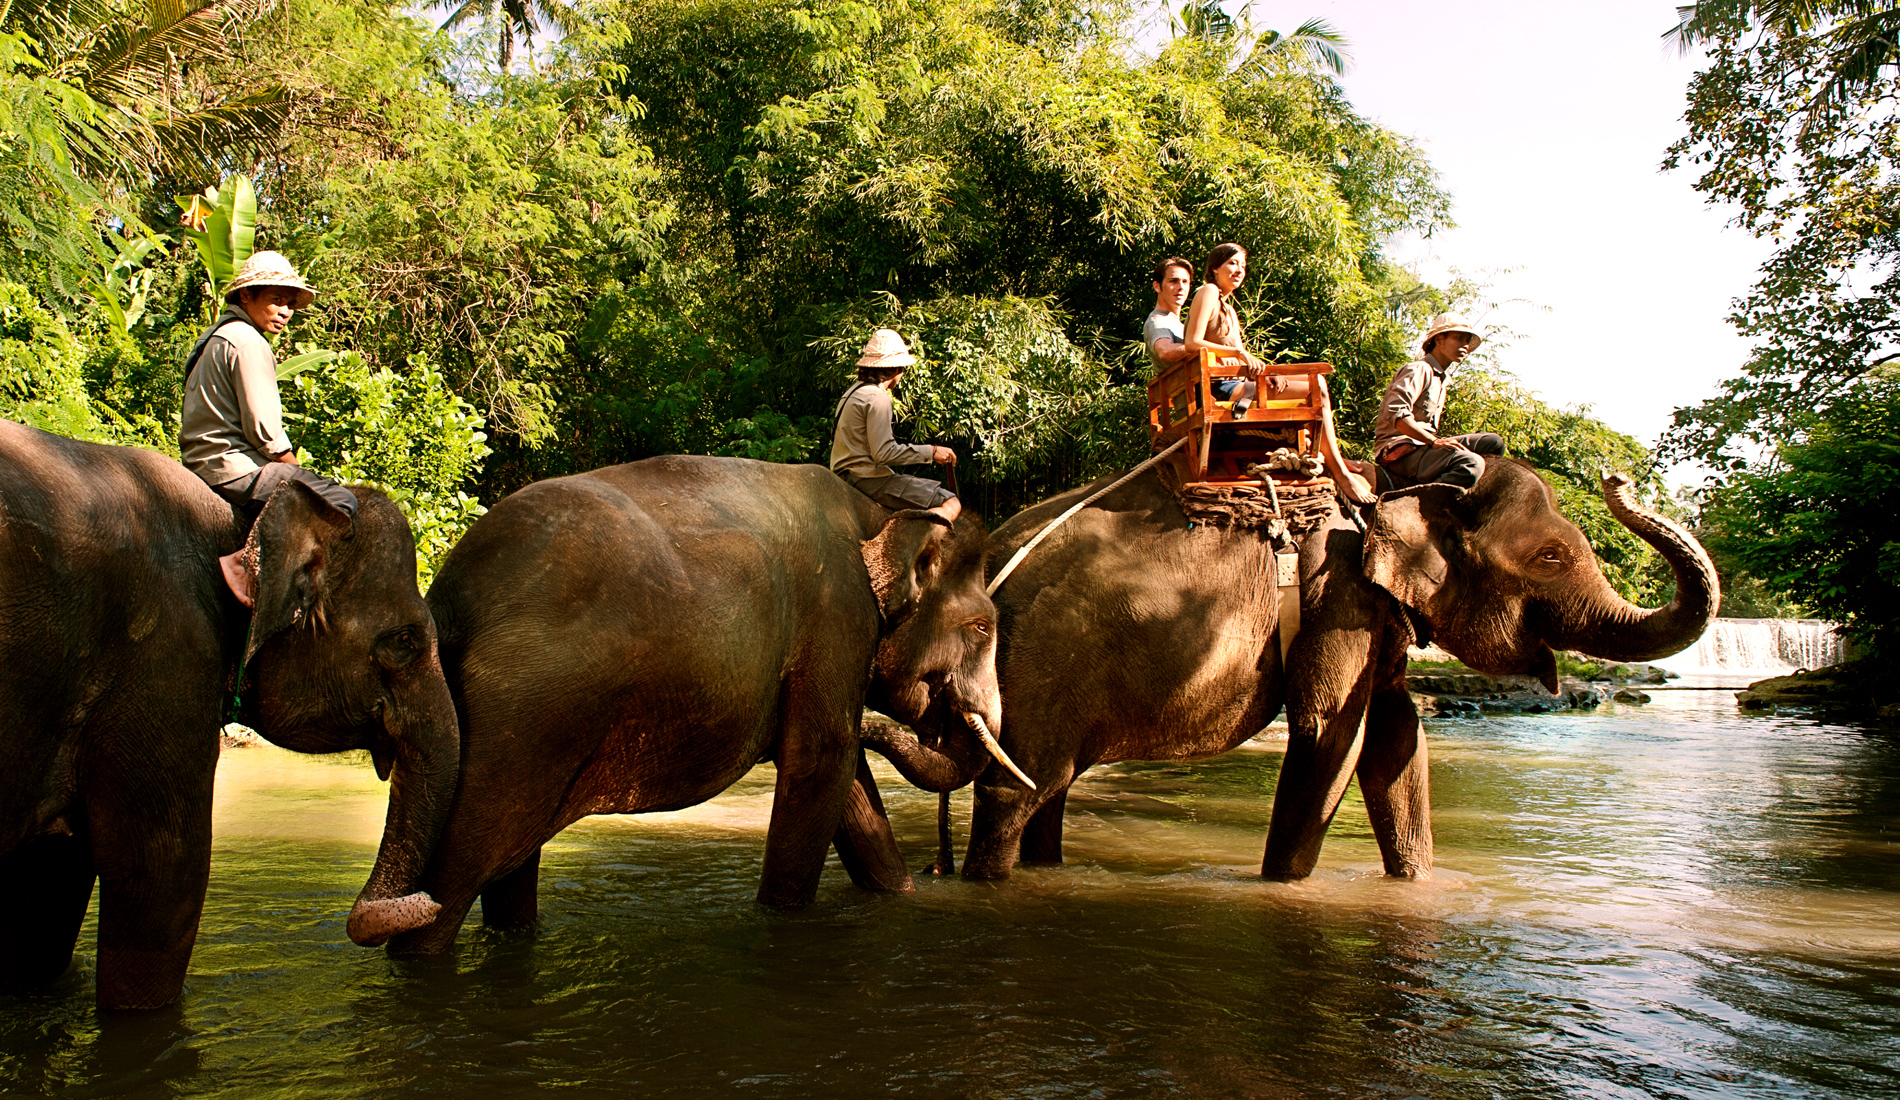 Elephant Expedition Bali Zoo - Bali Private Transport and Tour in Bali